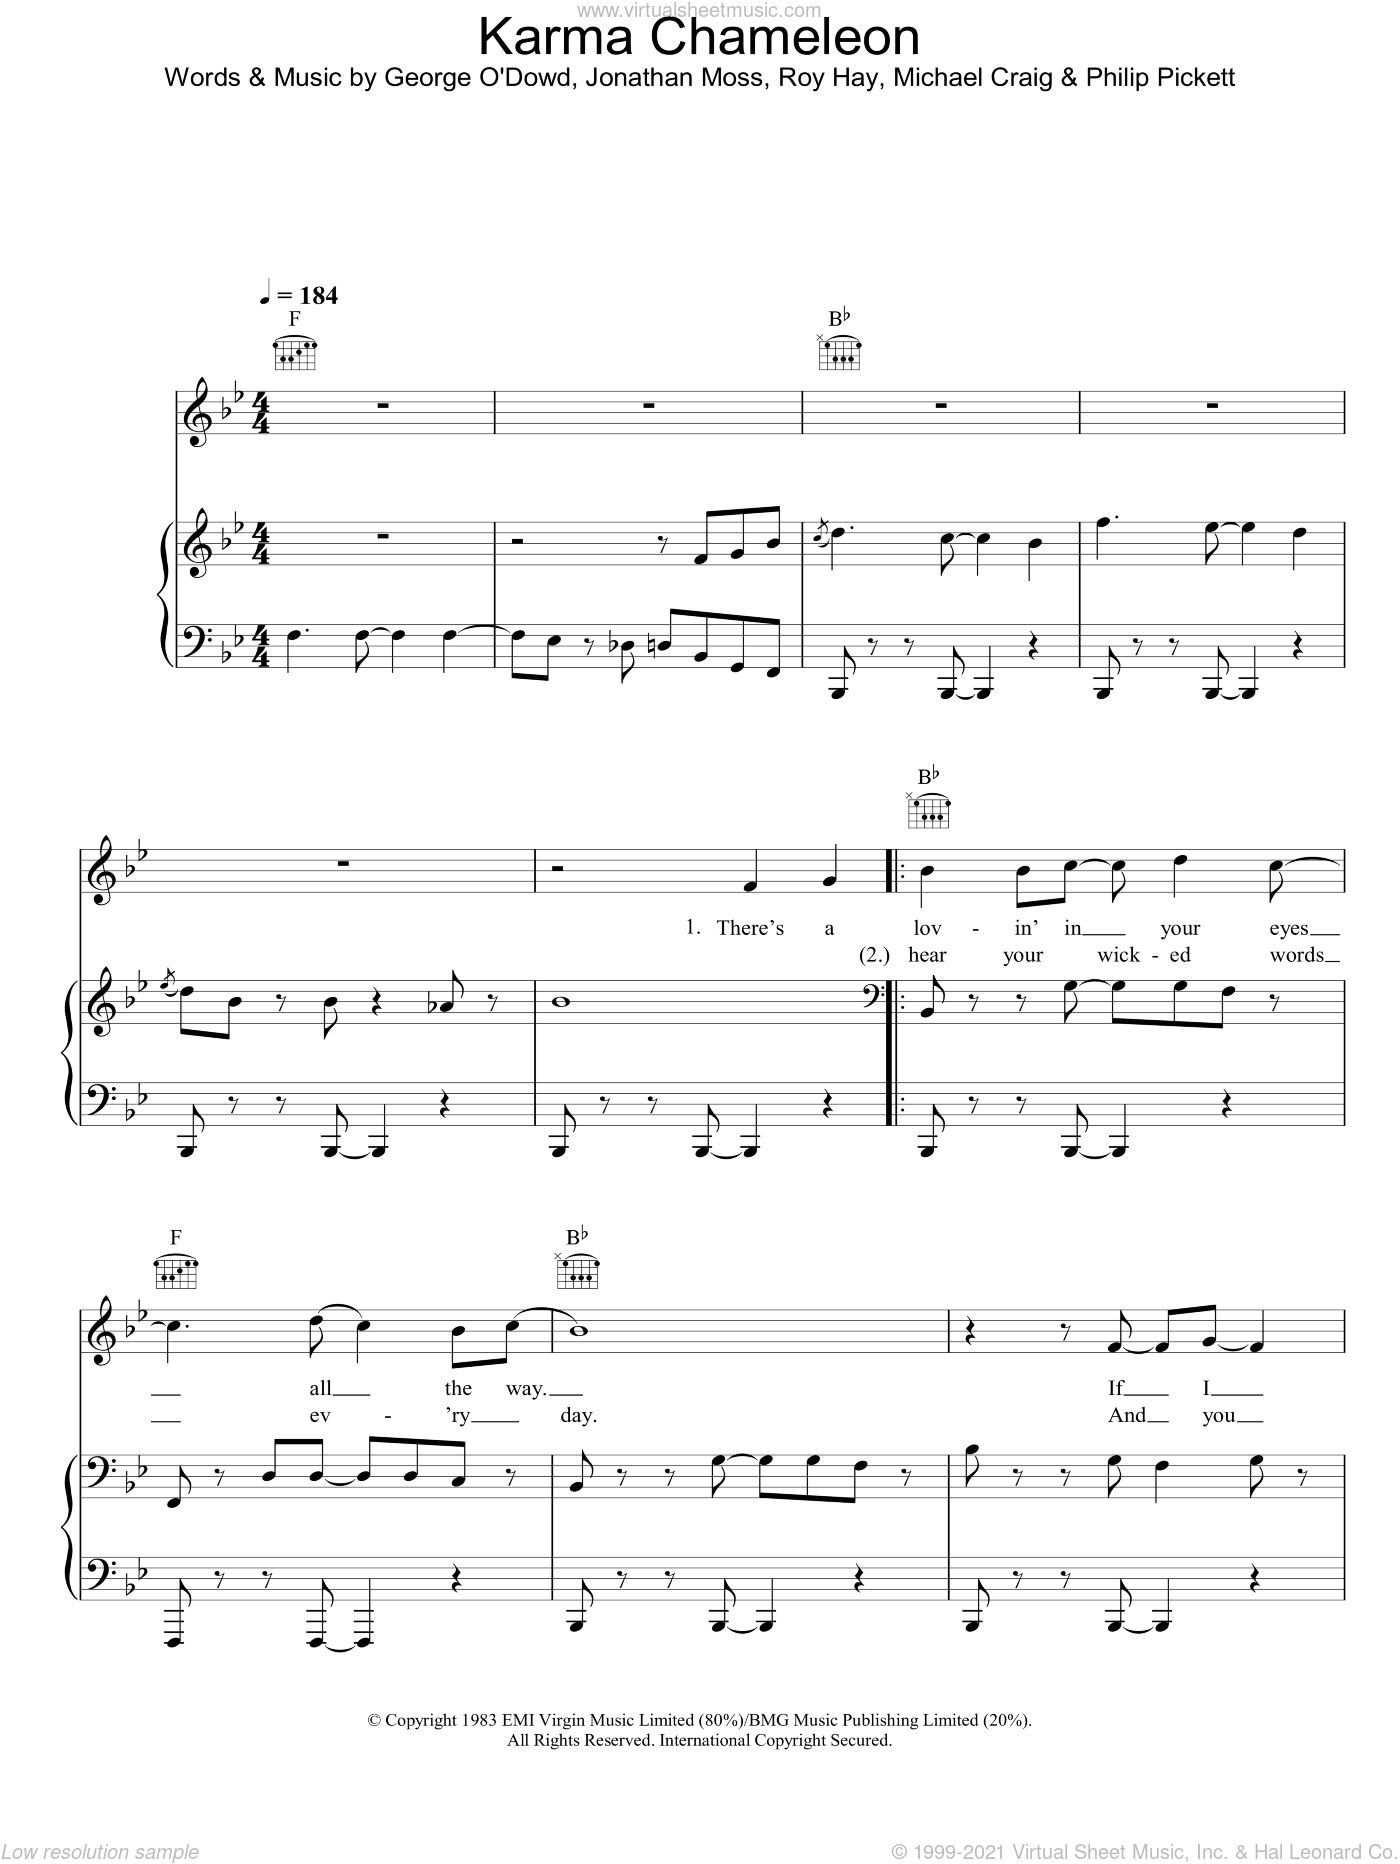 Karma Chameleon sheet music for voice, piano or guitar by Culture Club. Score Image Preview.